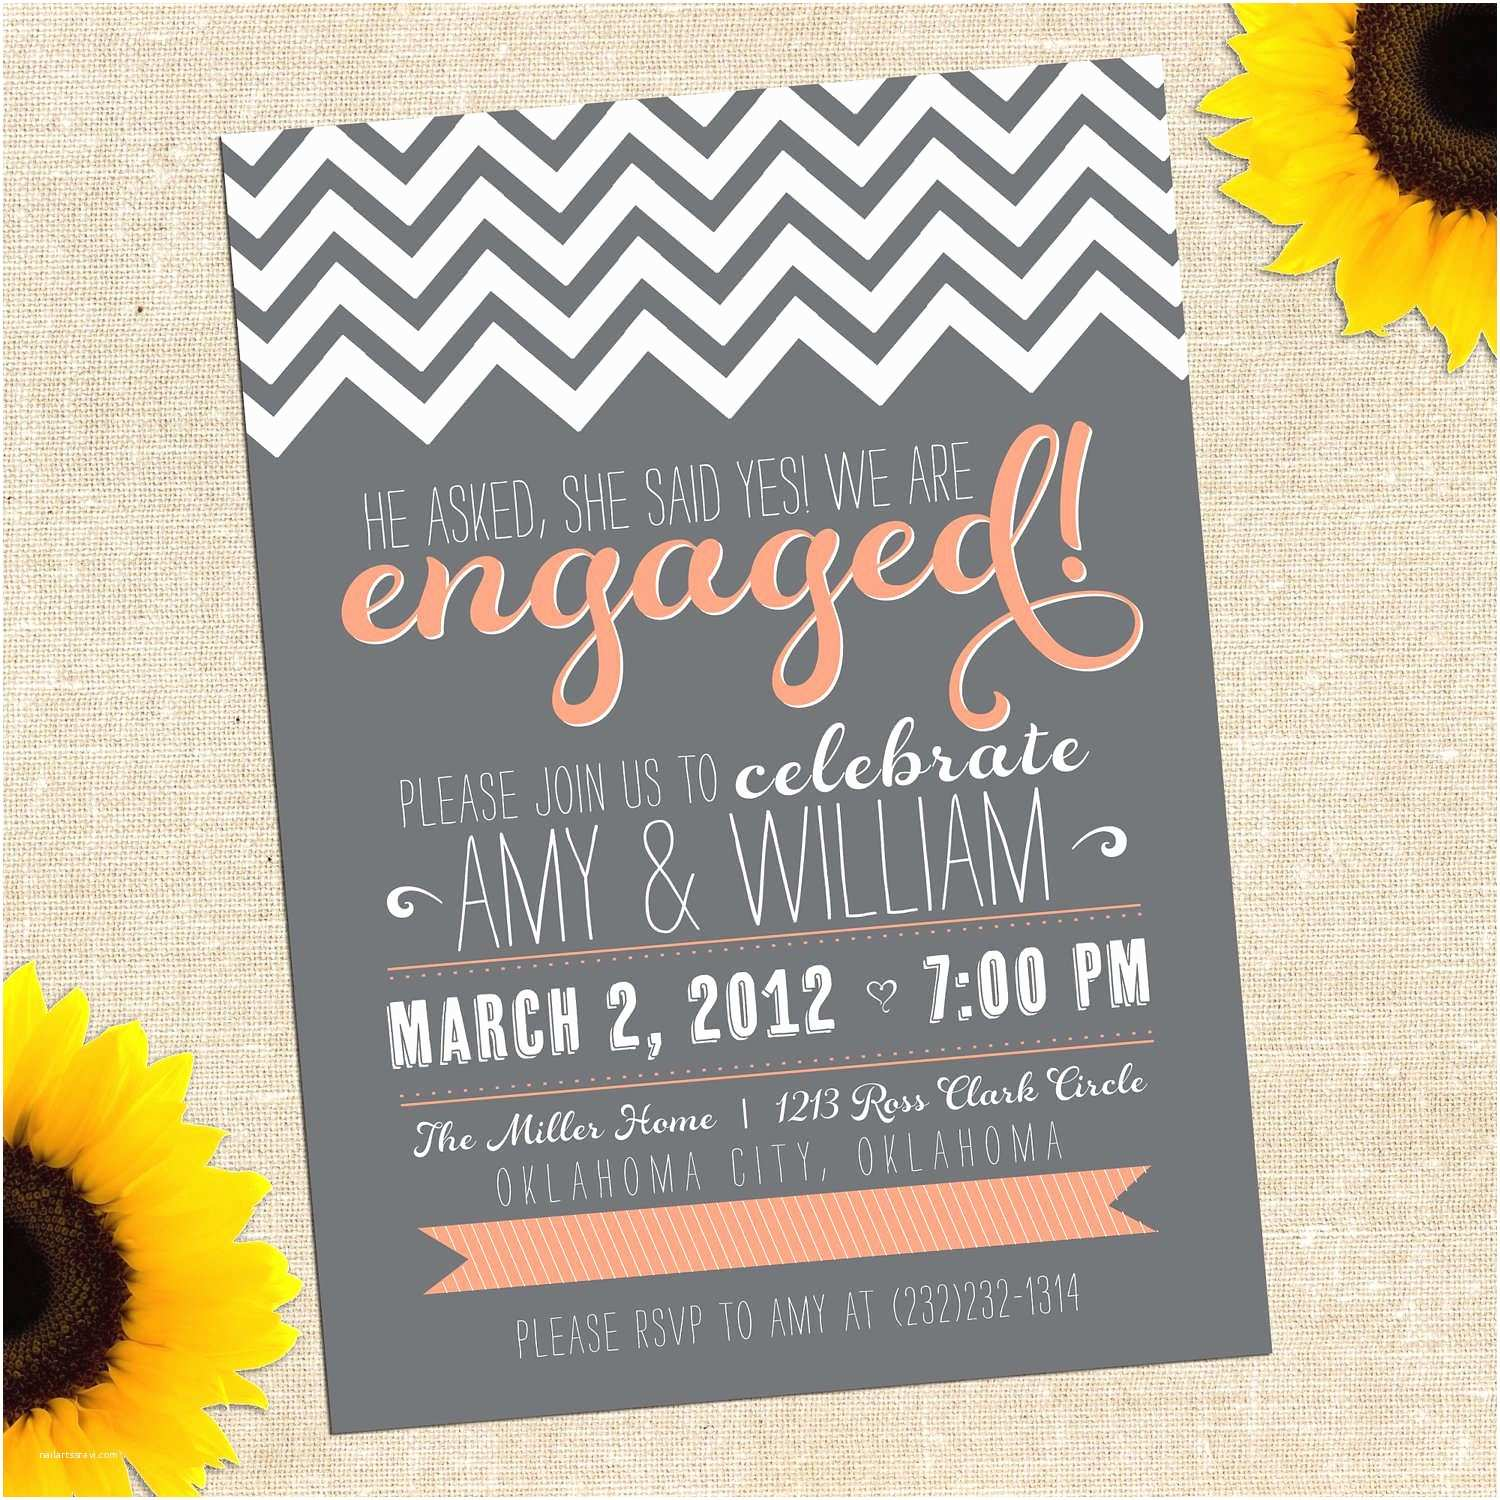 Cheap Engagement Party Invitations Cheap Engagement Party Invitations Cheap Rustic